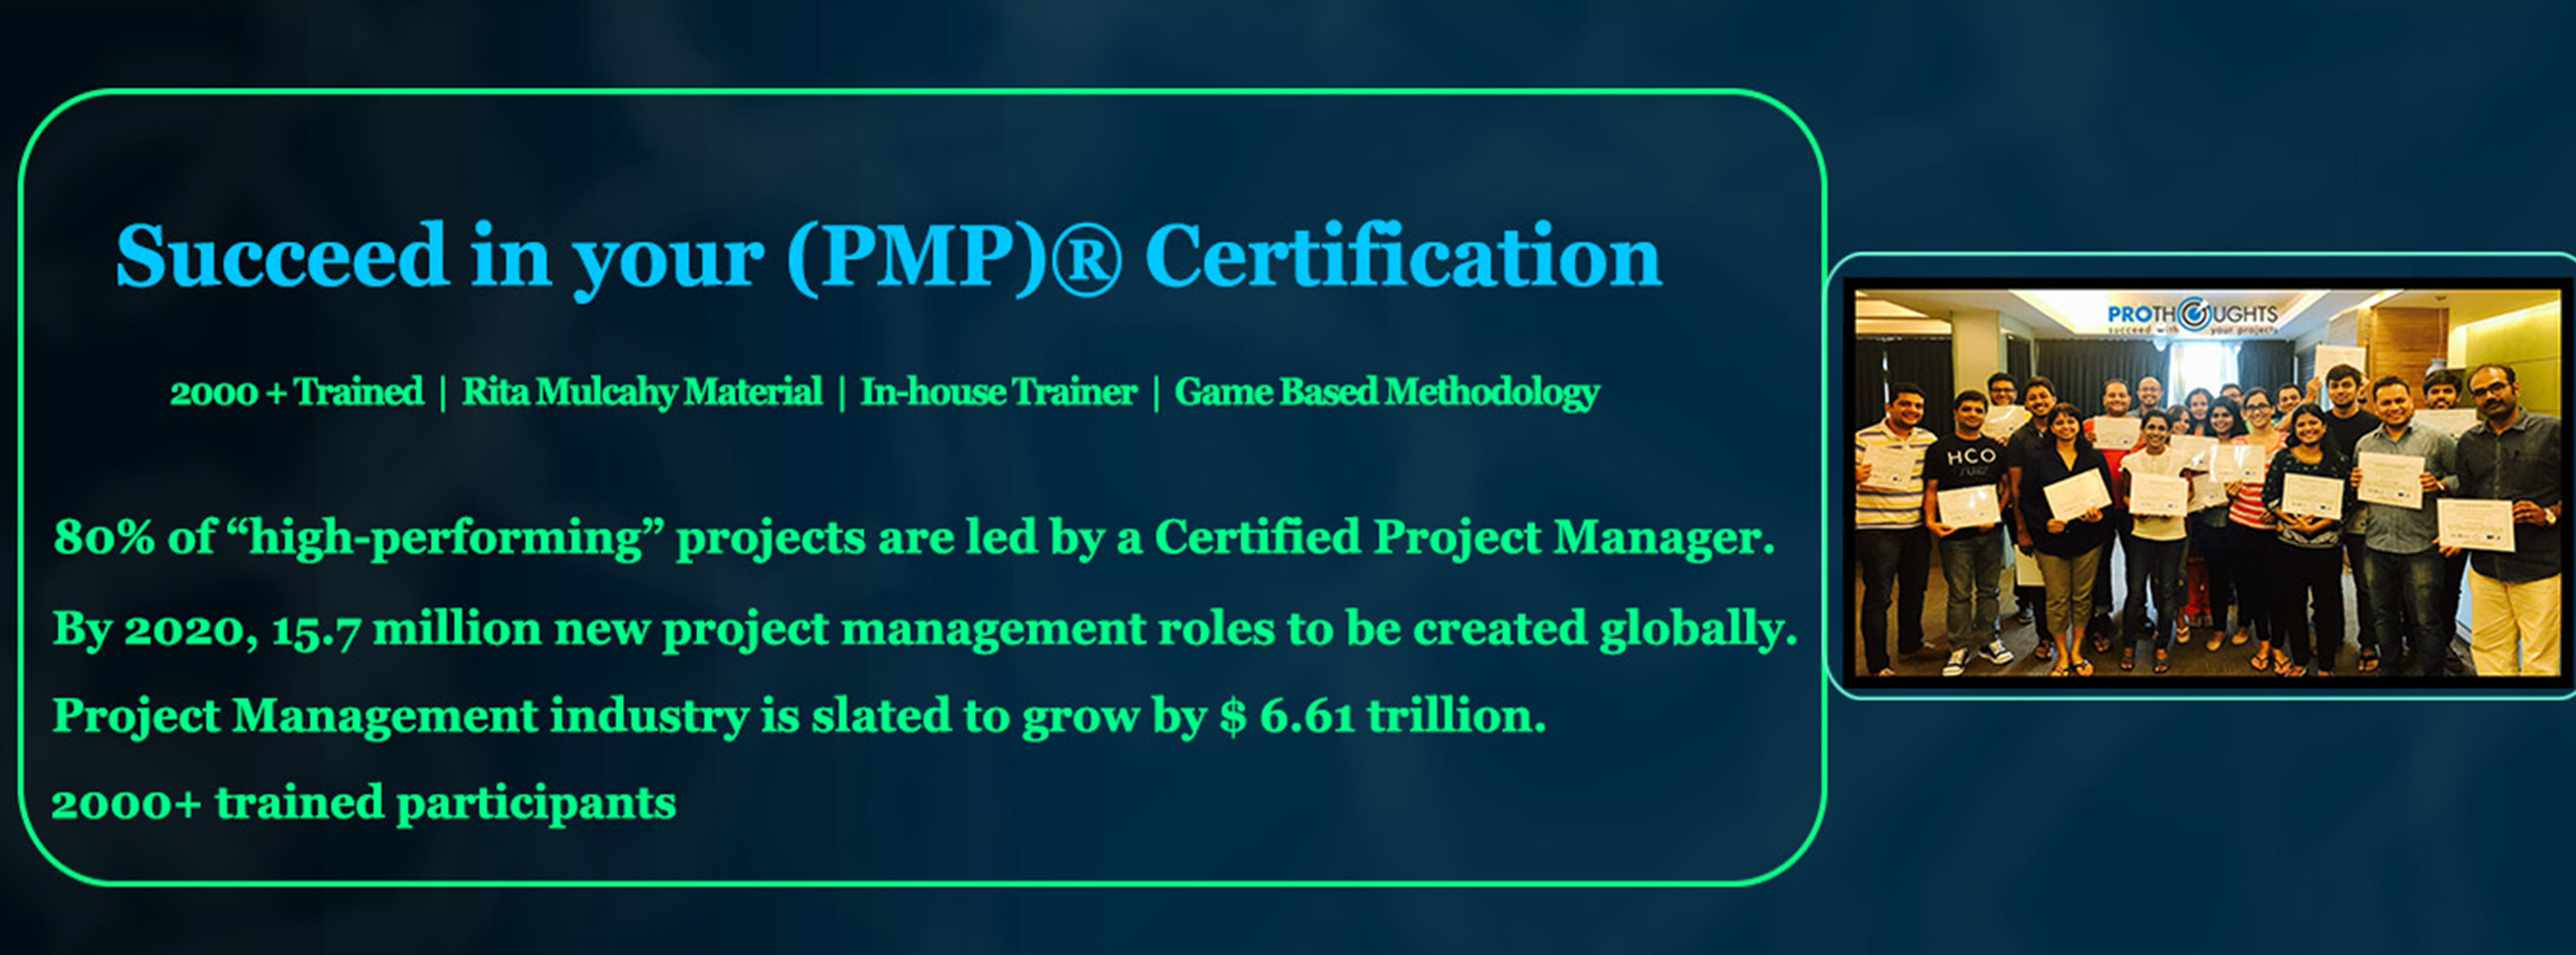 Capm certification details prothoughts certified associate in project management capm 1betcityfo Gallery